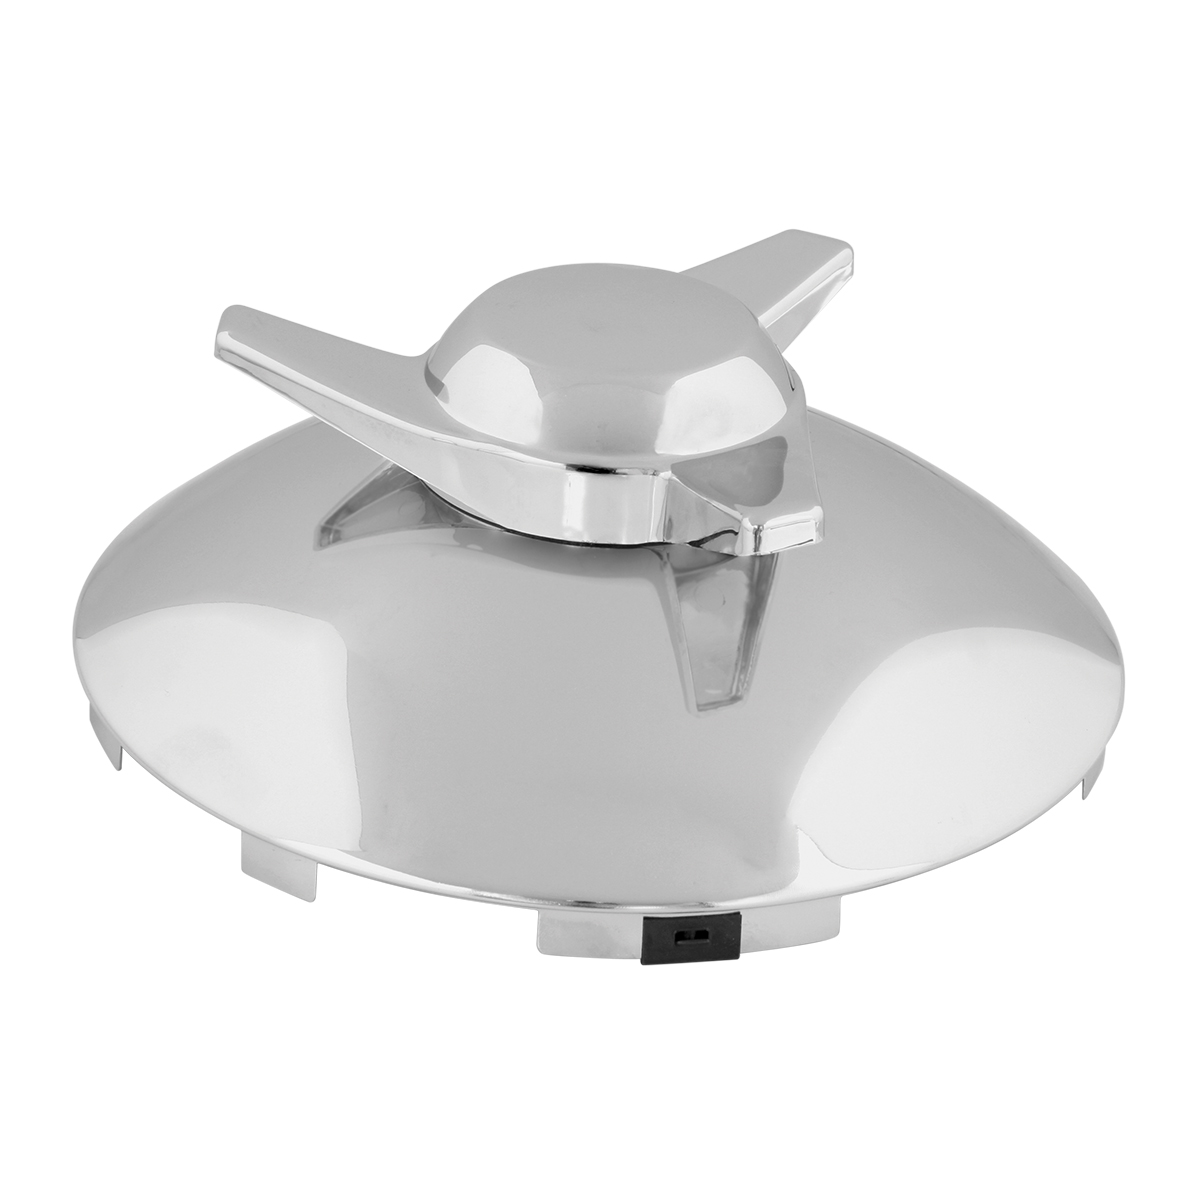 "Universal ⁷∕₁₆"" Front Hub Caps Notched with R/H Swept Wing Spinner"